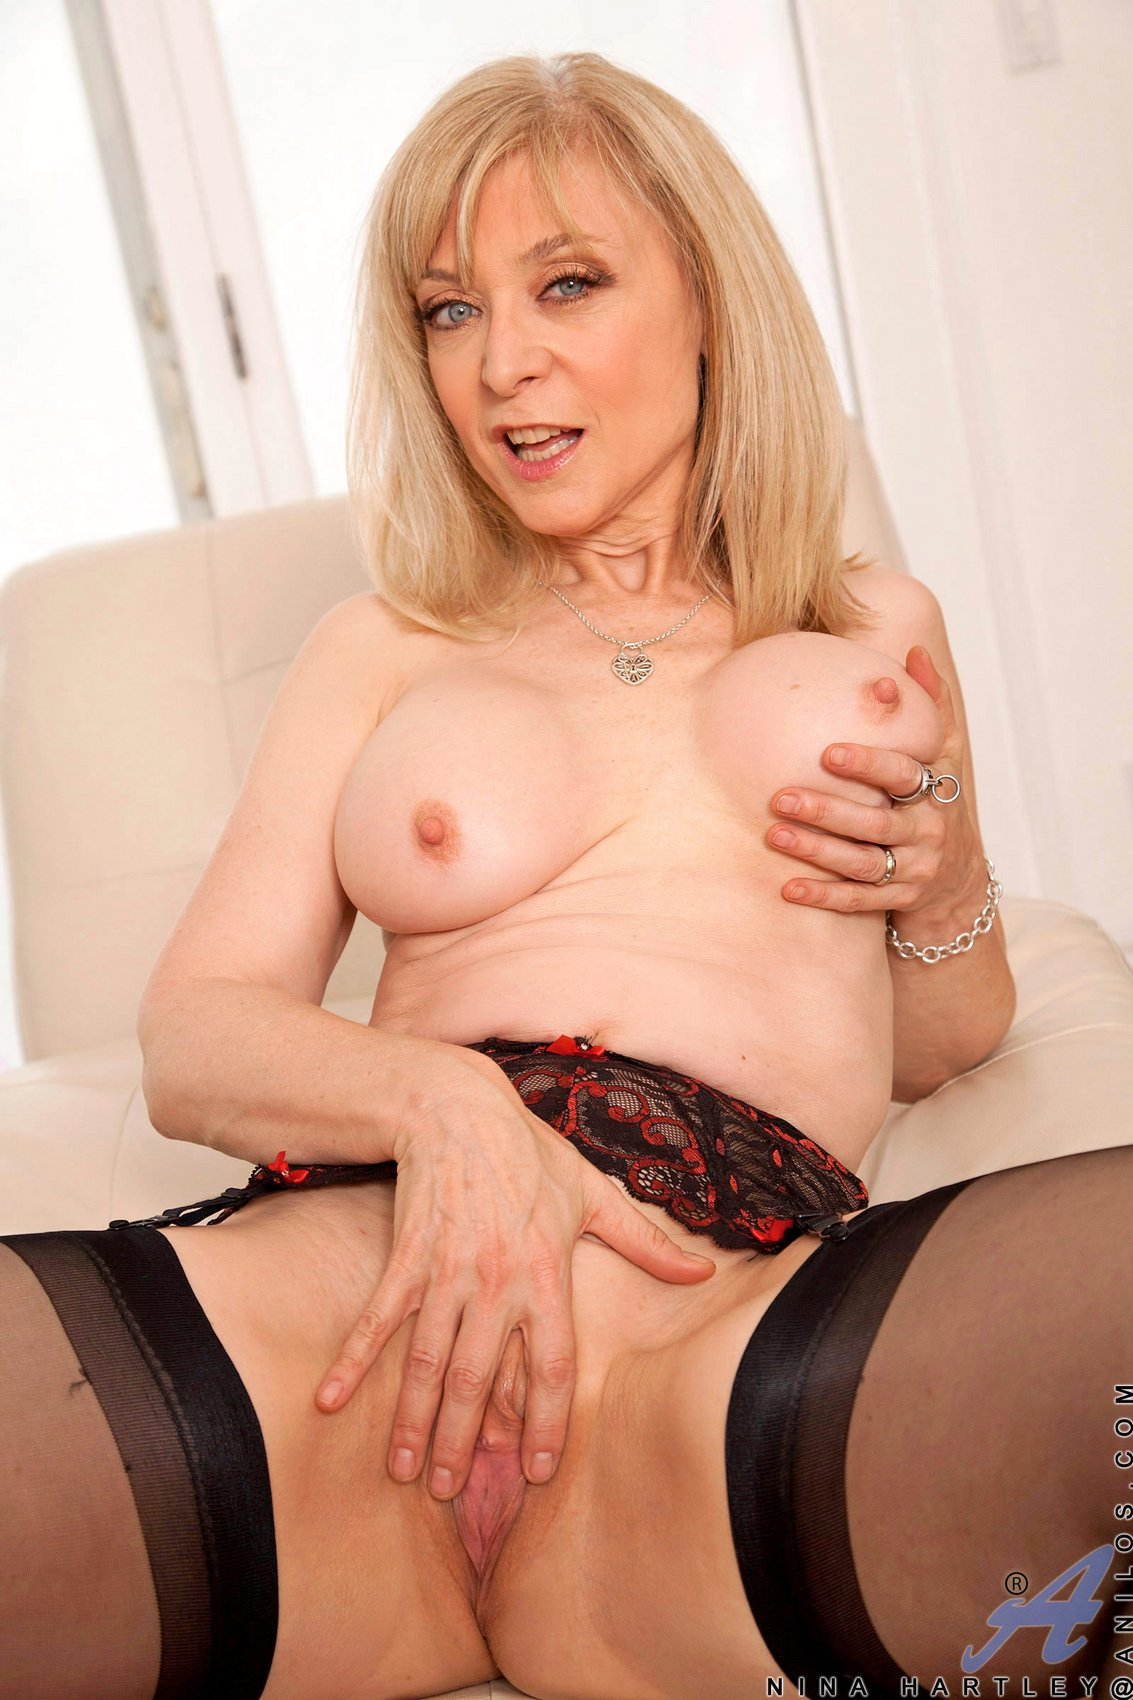 Naked nina hartley can